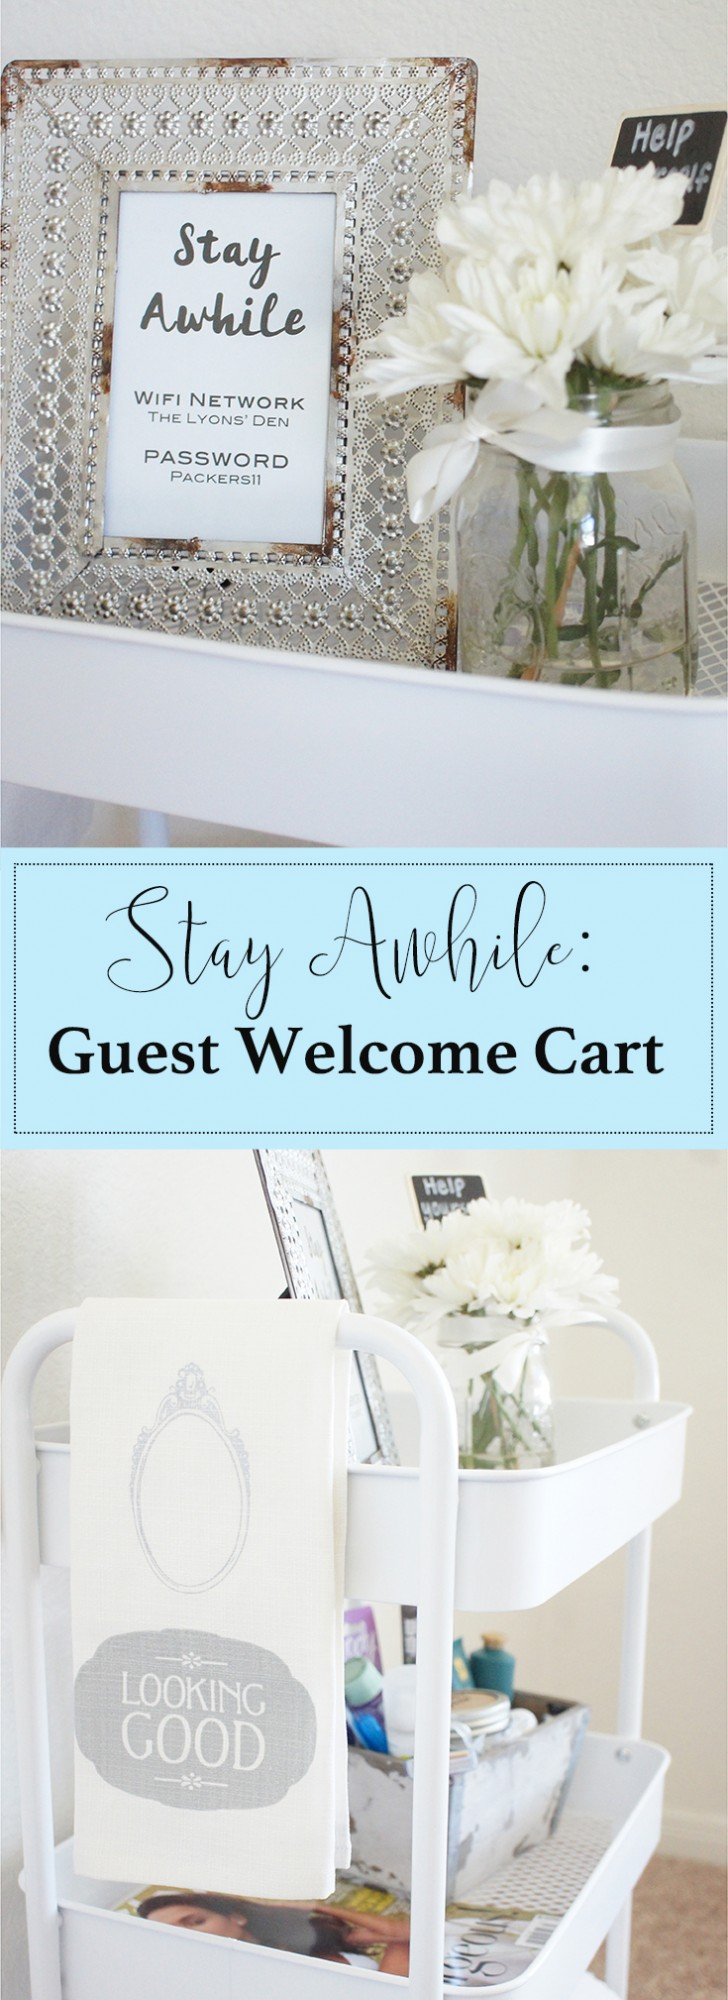 Welcome your guests and make them feel at home with this pretty hospitality cart!